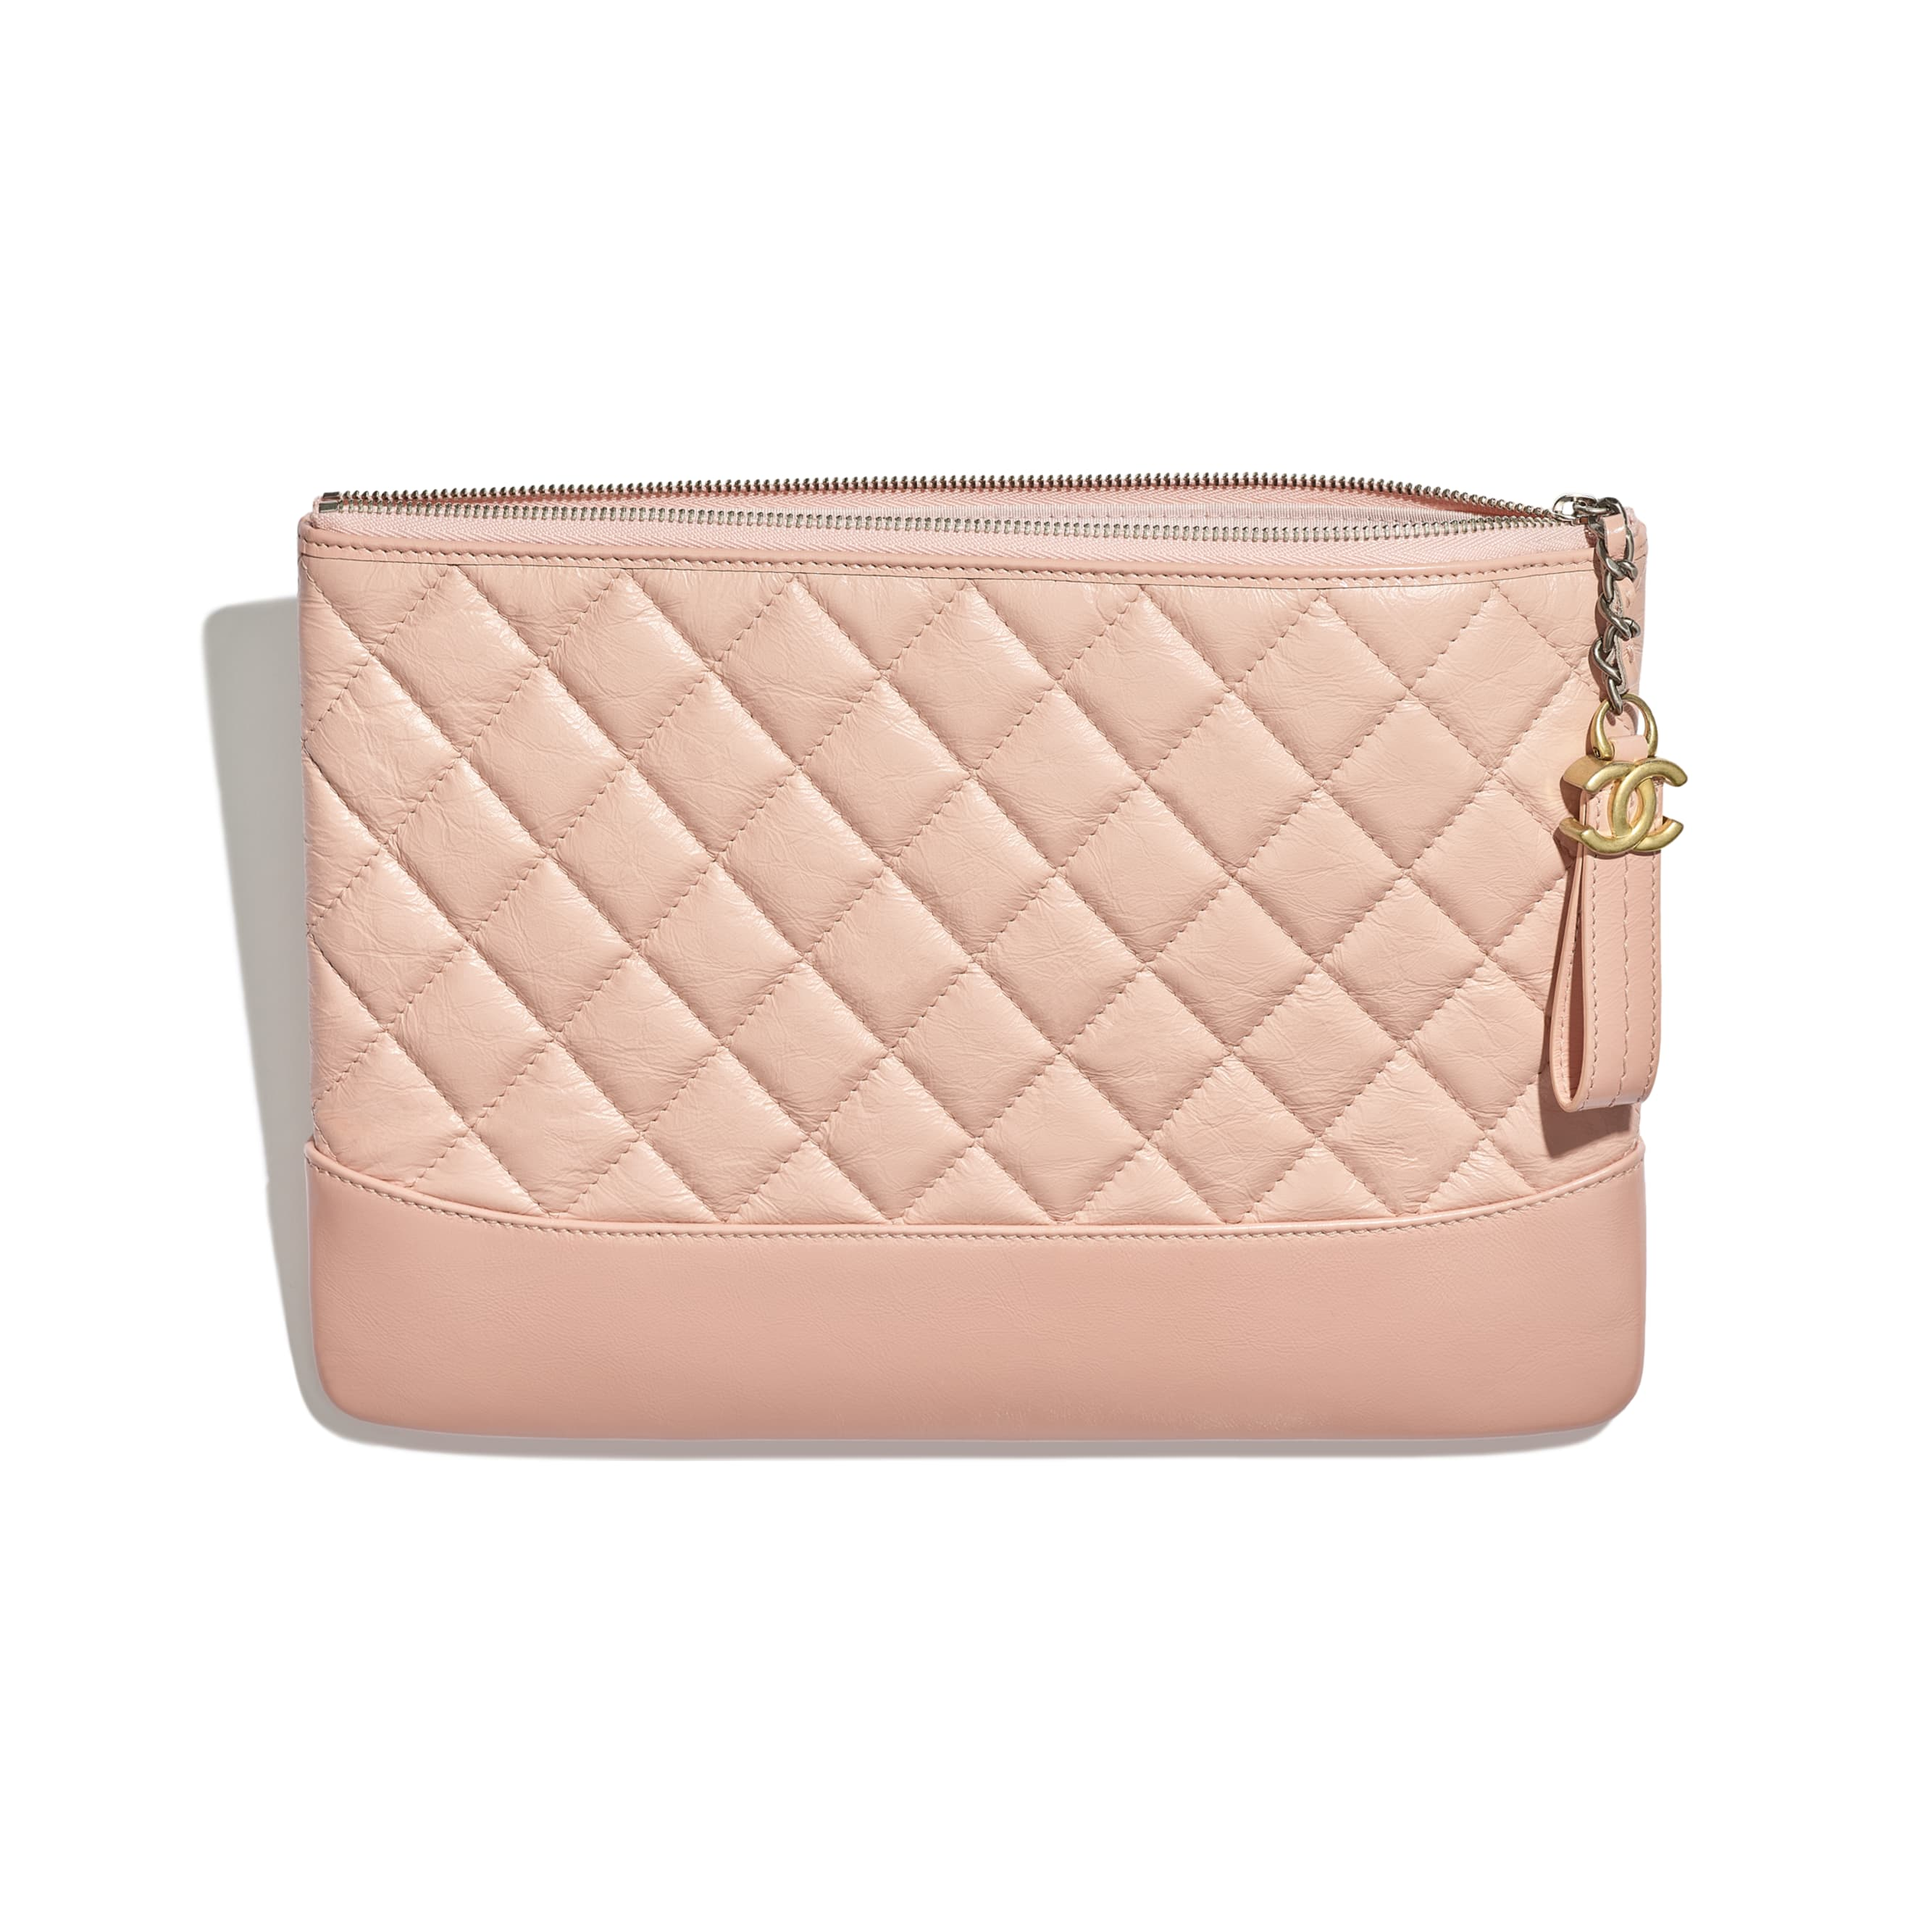 Pouch - Light Pink - Aged Calfskin, Smooth Calfskin & Gold-Tone Metal - CHANEL - Other view - see standard sized version